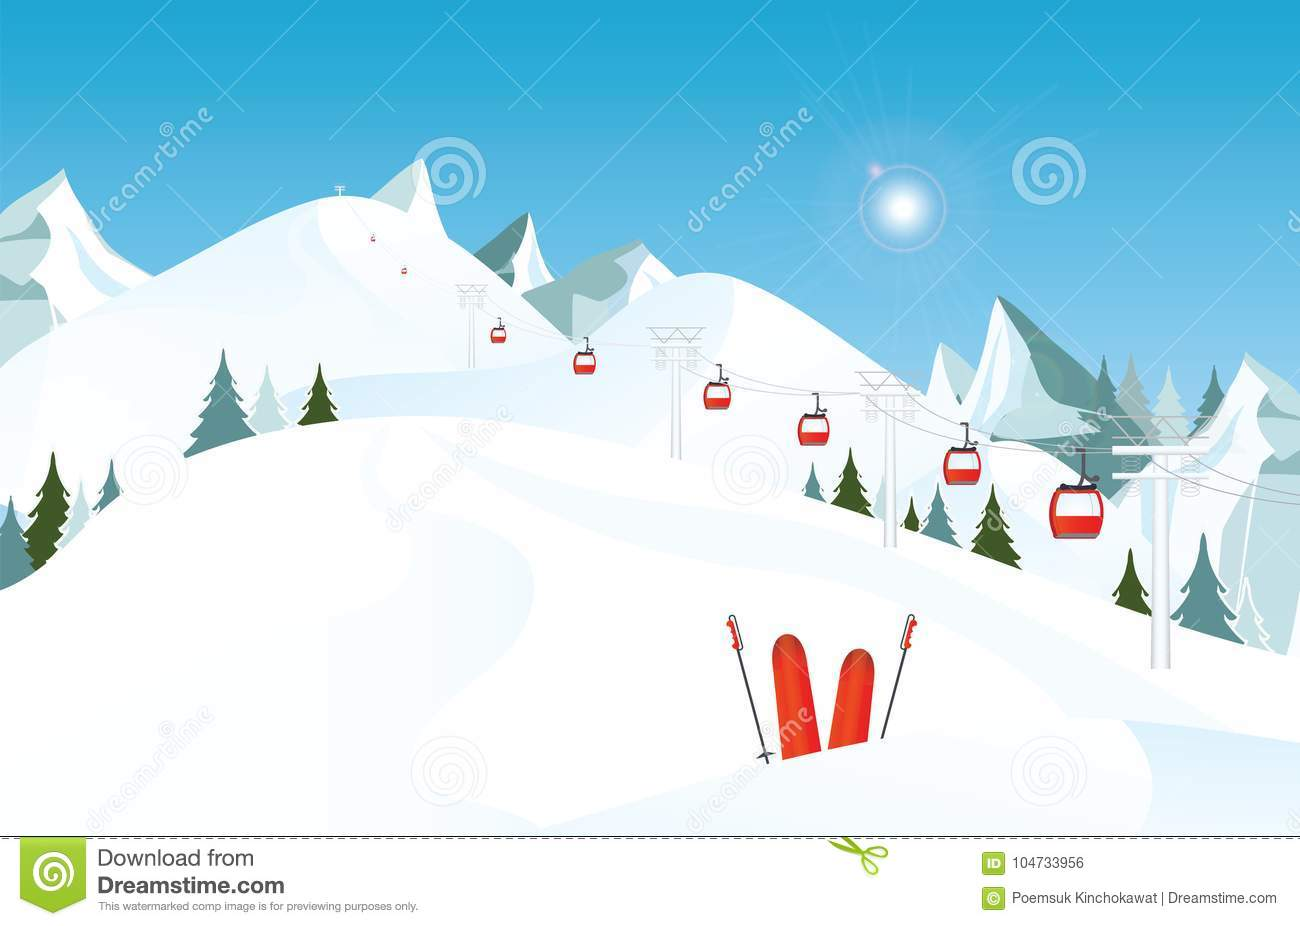 Winter mountain landscape with pair of skis in snow and ski lift